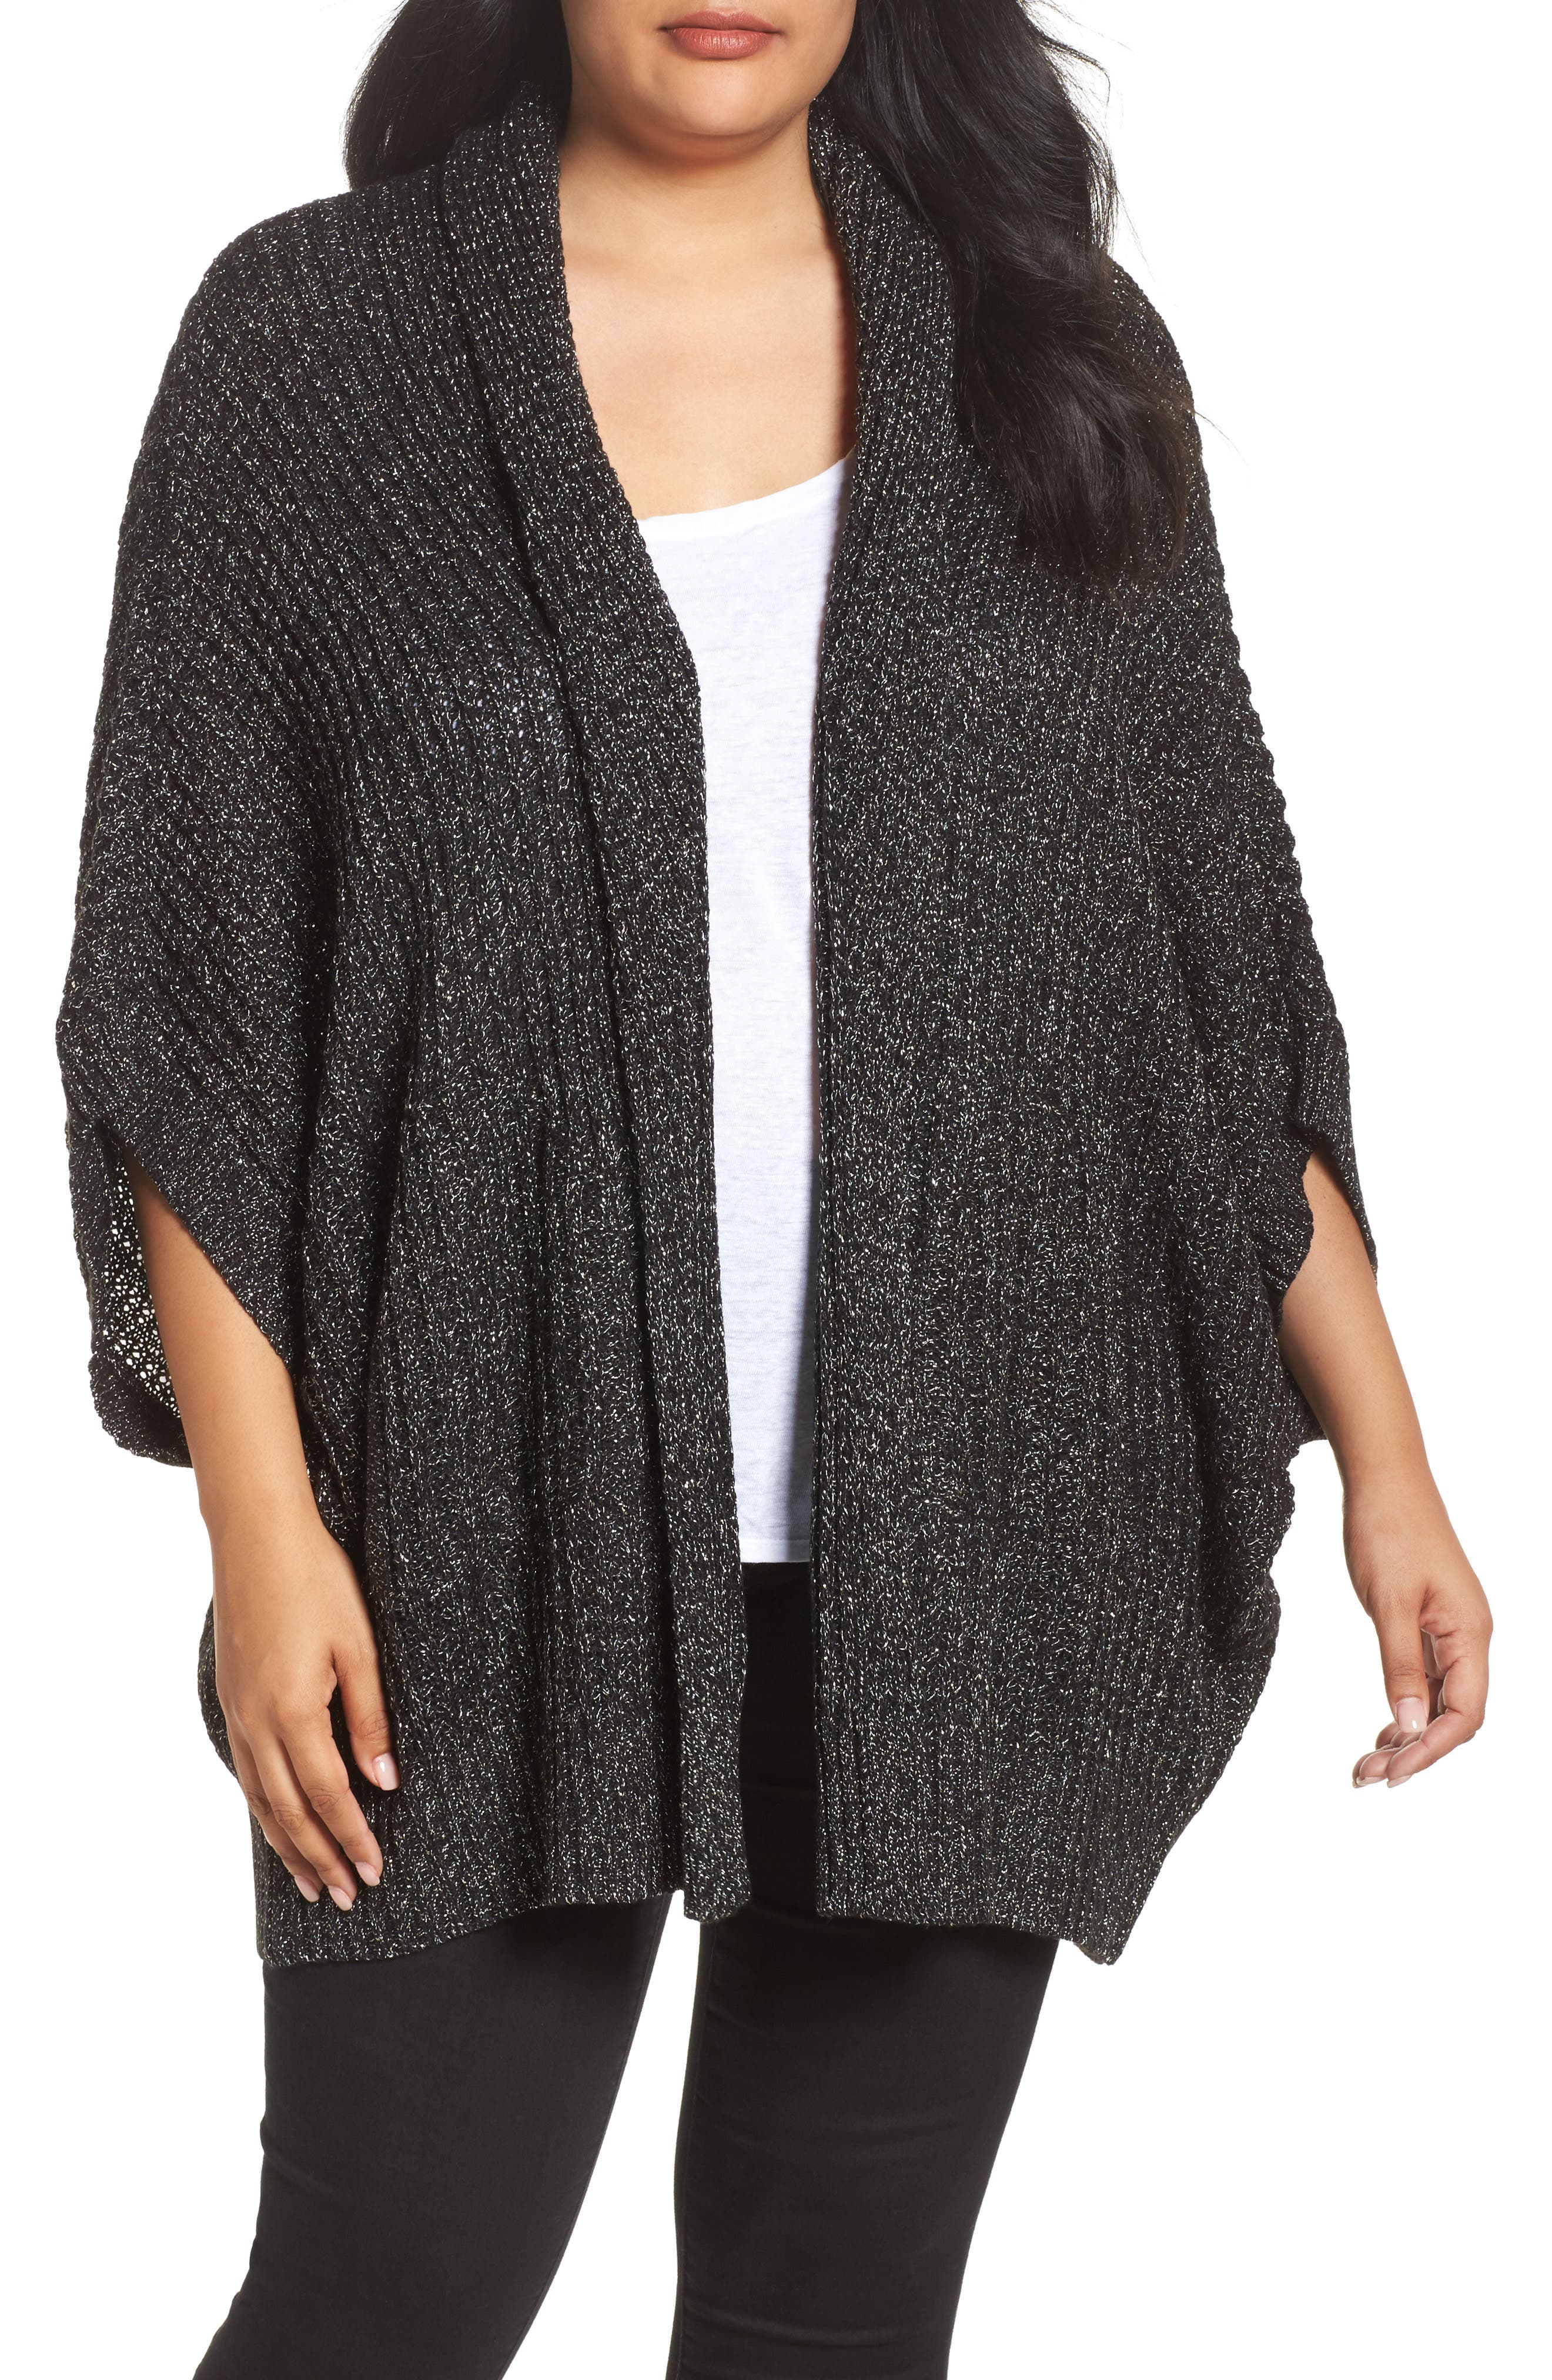 Alternate Image 1 Selected - Melissa McCarthy Seven7 Cocoon Cardigan (Plus Size)